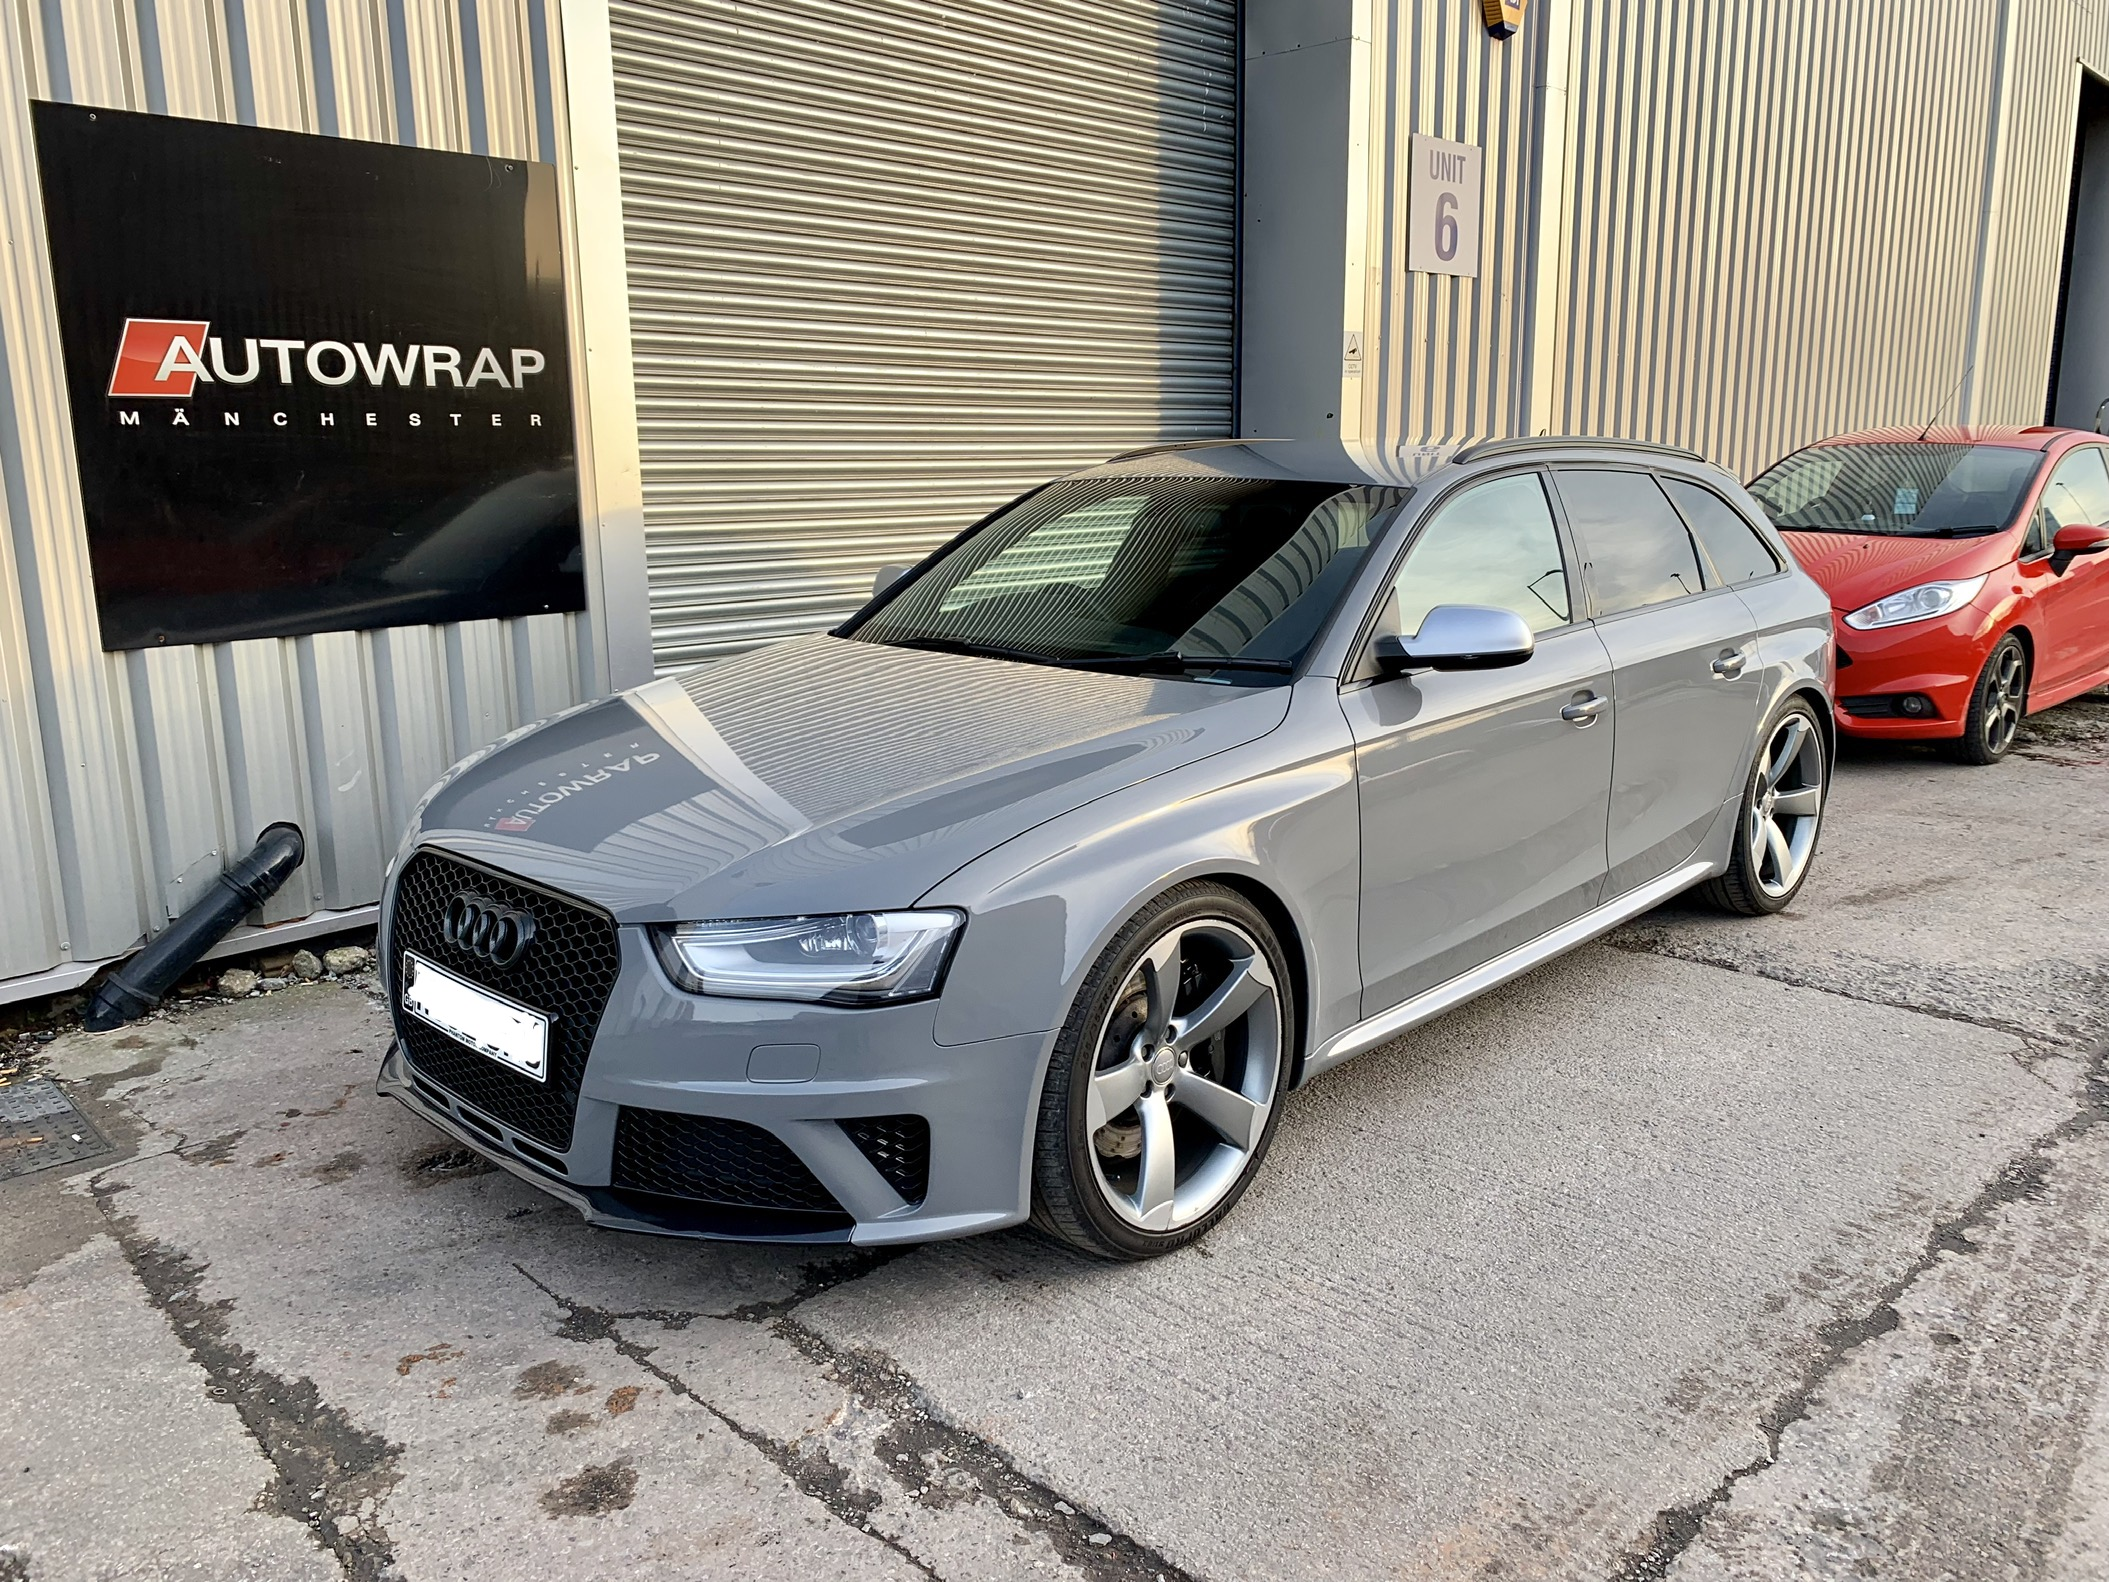 Remaps in Manchester, Remapping, Remap, Car Tuning, Performance Map, Manchester, Trafford Park, Auto Map Manchester, Eco Remaps, Fuel Remaps, Chip Car, Race Chip, Auto Map Manchester